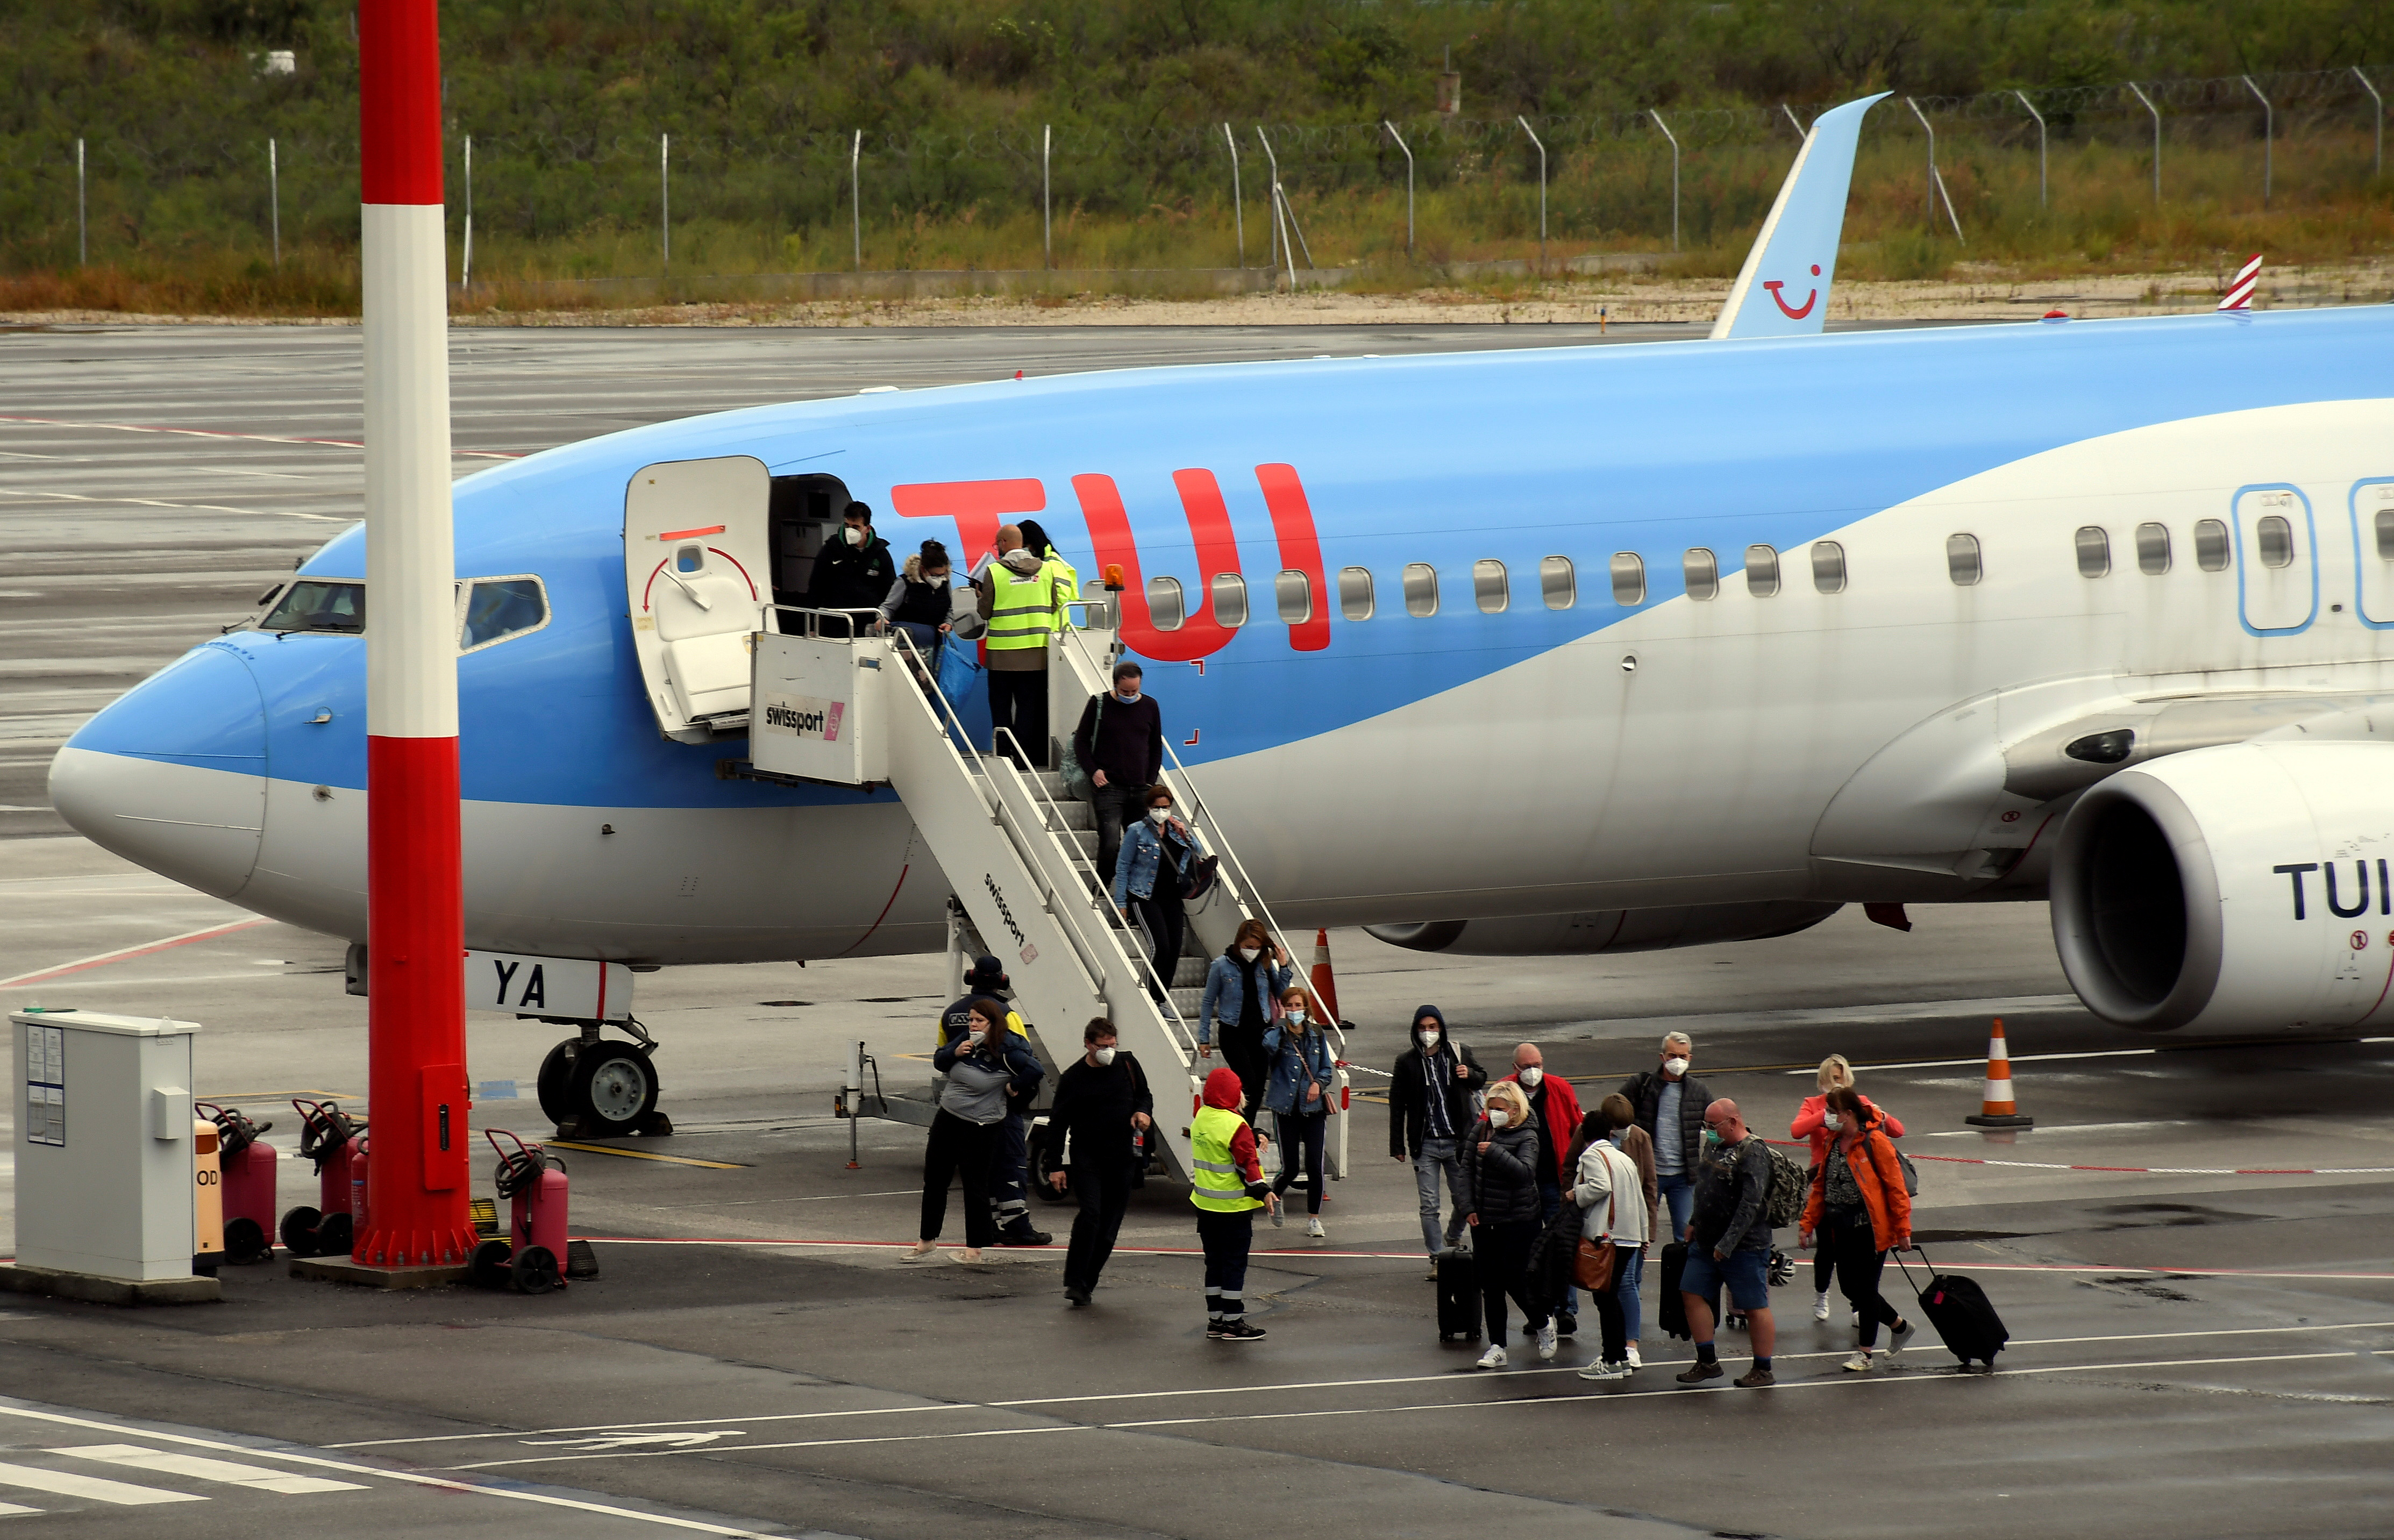 Passengers of TUI Airways flight from Dusseldorf arrive at Ioannis Kapodistrias International Airport, as the country's tourism season officially opens, on the island of Corfu, Greece, May 15, 2021. REUTERS/Adonis Skordilis